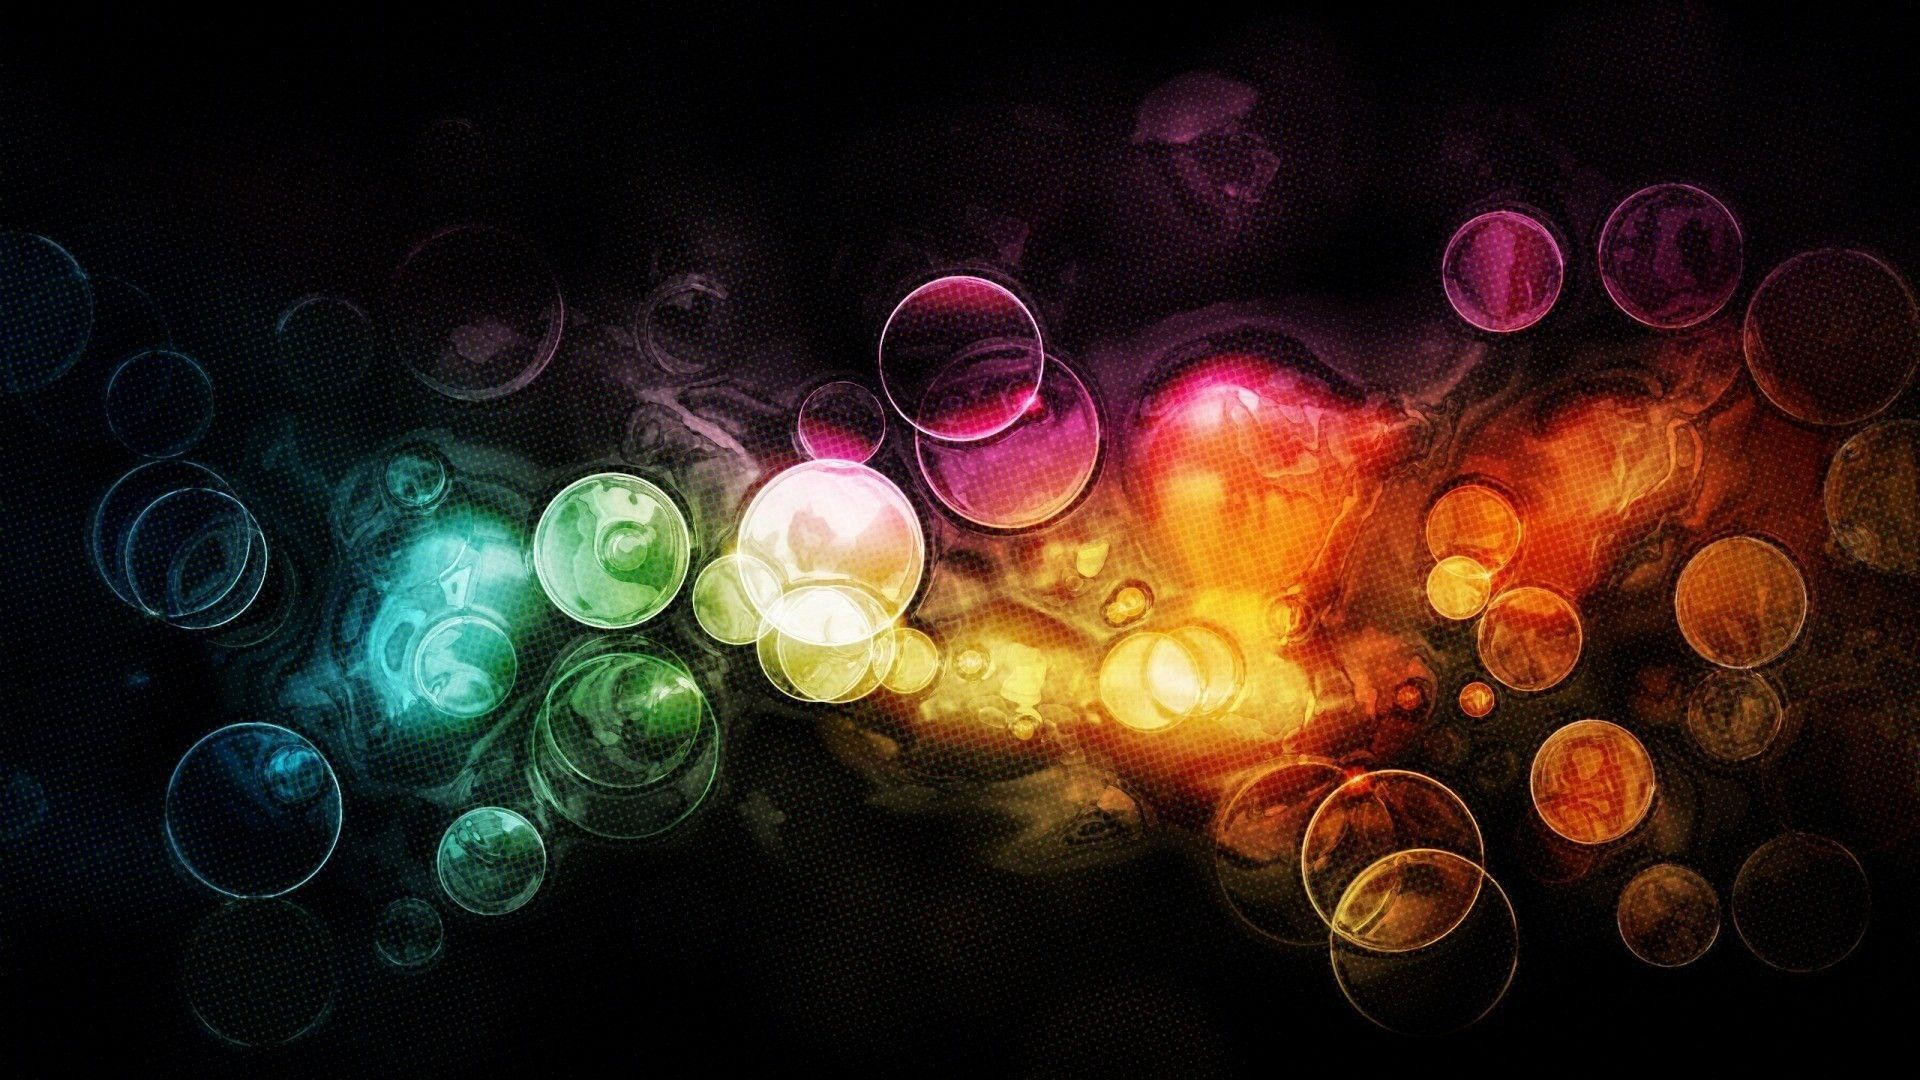 Abstract Hd Wallpapers 1080p 74 Background Pictures